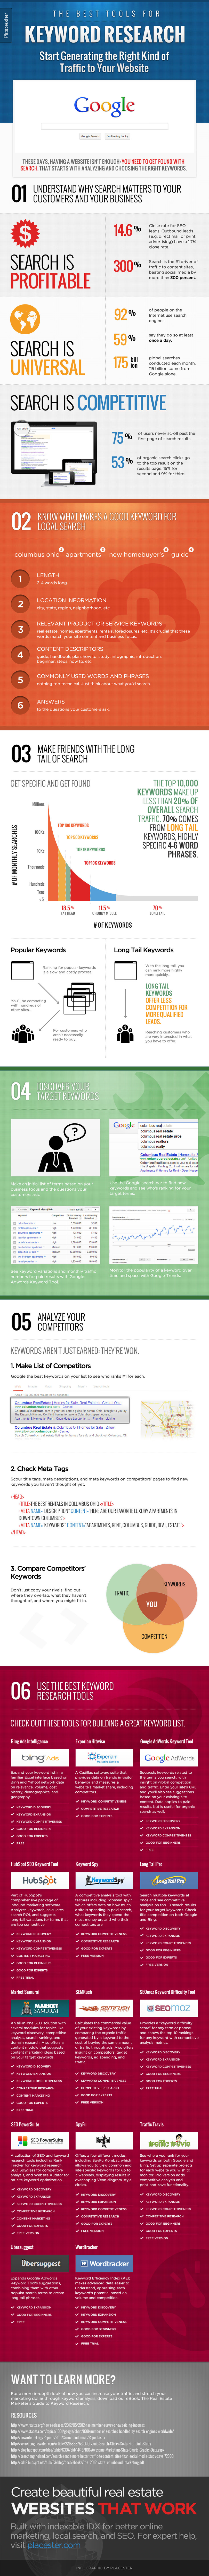 infographic: Best Tools For Keyword Research On Web